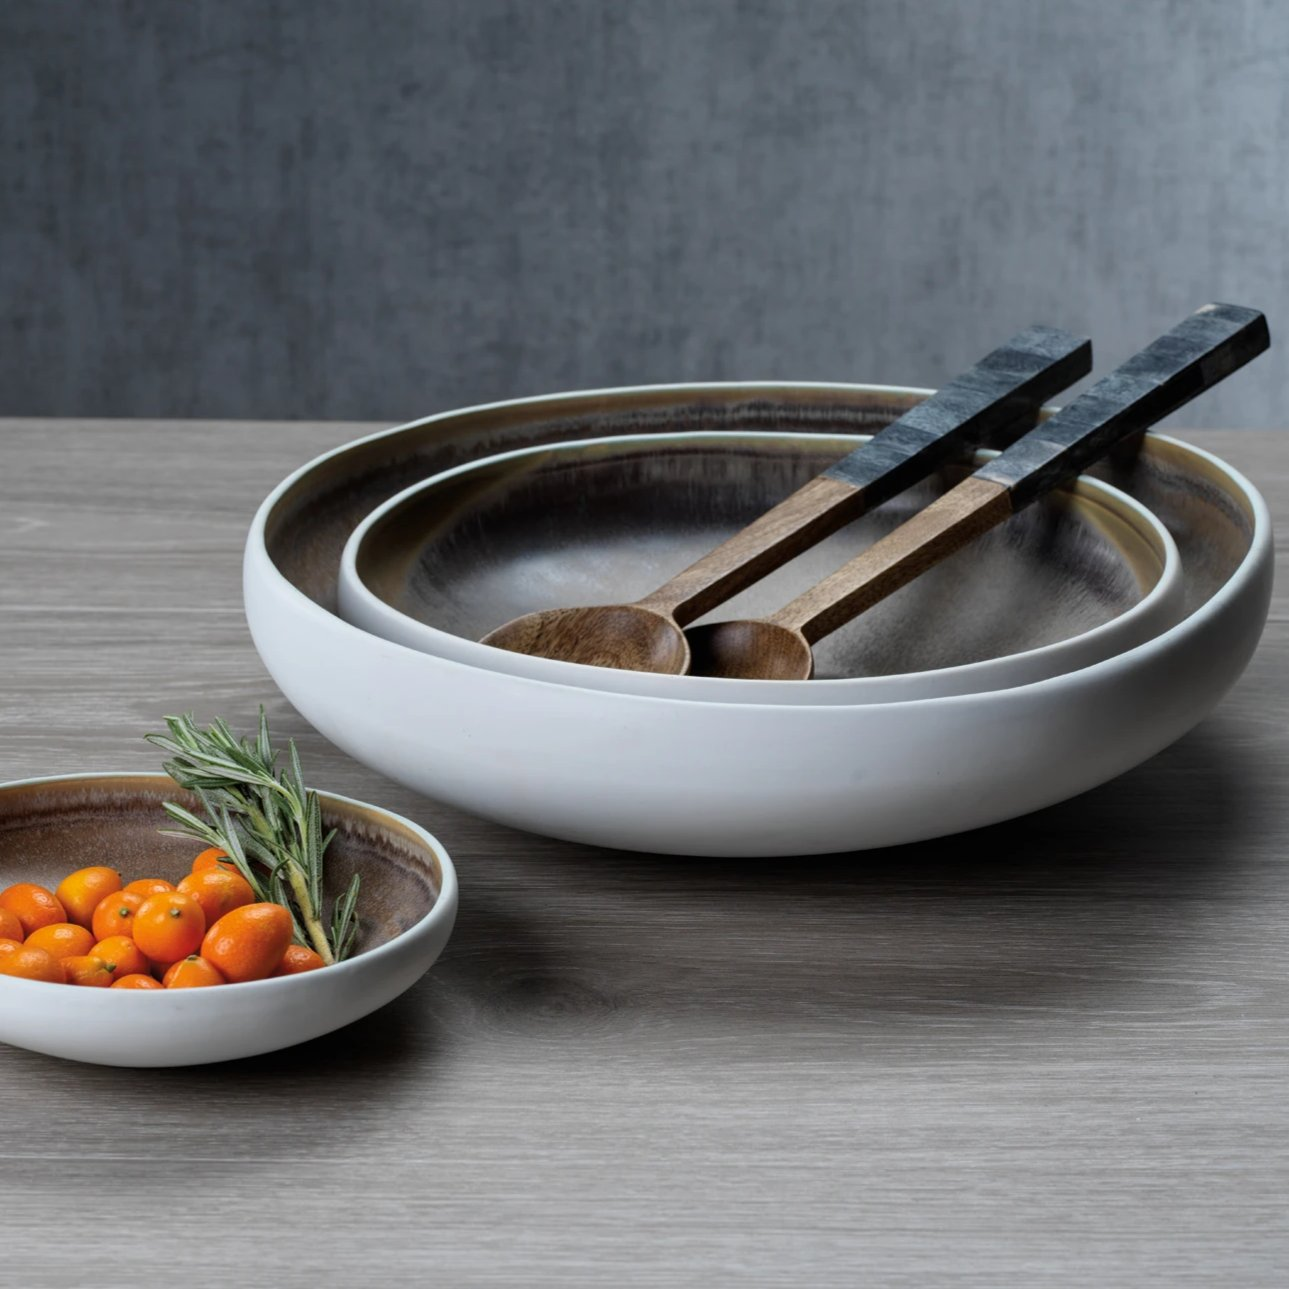 Sahara Ceramic Serving Bowl - CARLYLE AVENUE